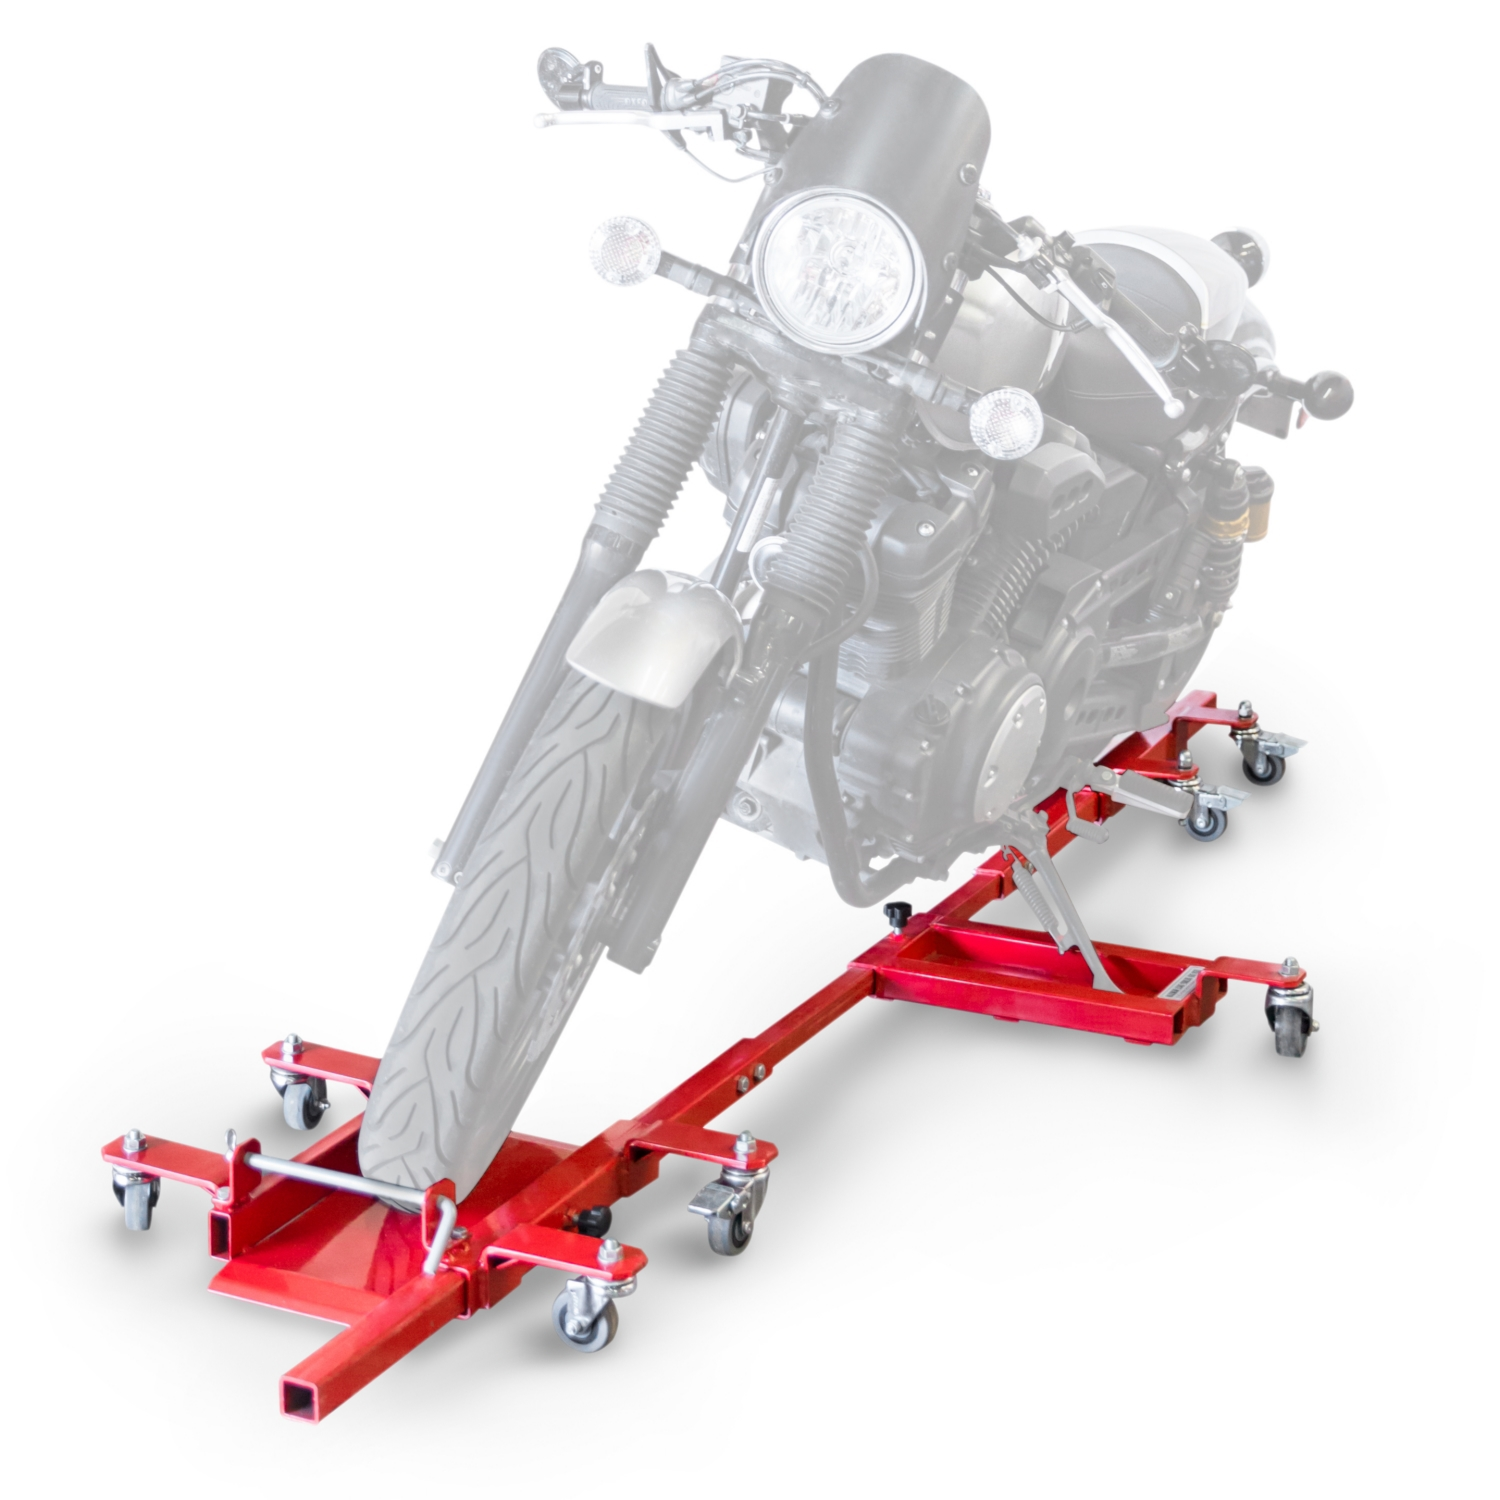 Kimpex Long Motorcycle Dolly Transportation Stand 1500 lbs   #000820